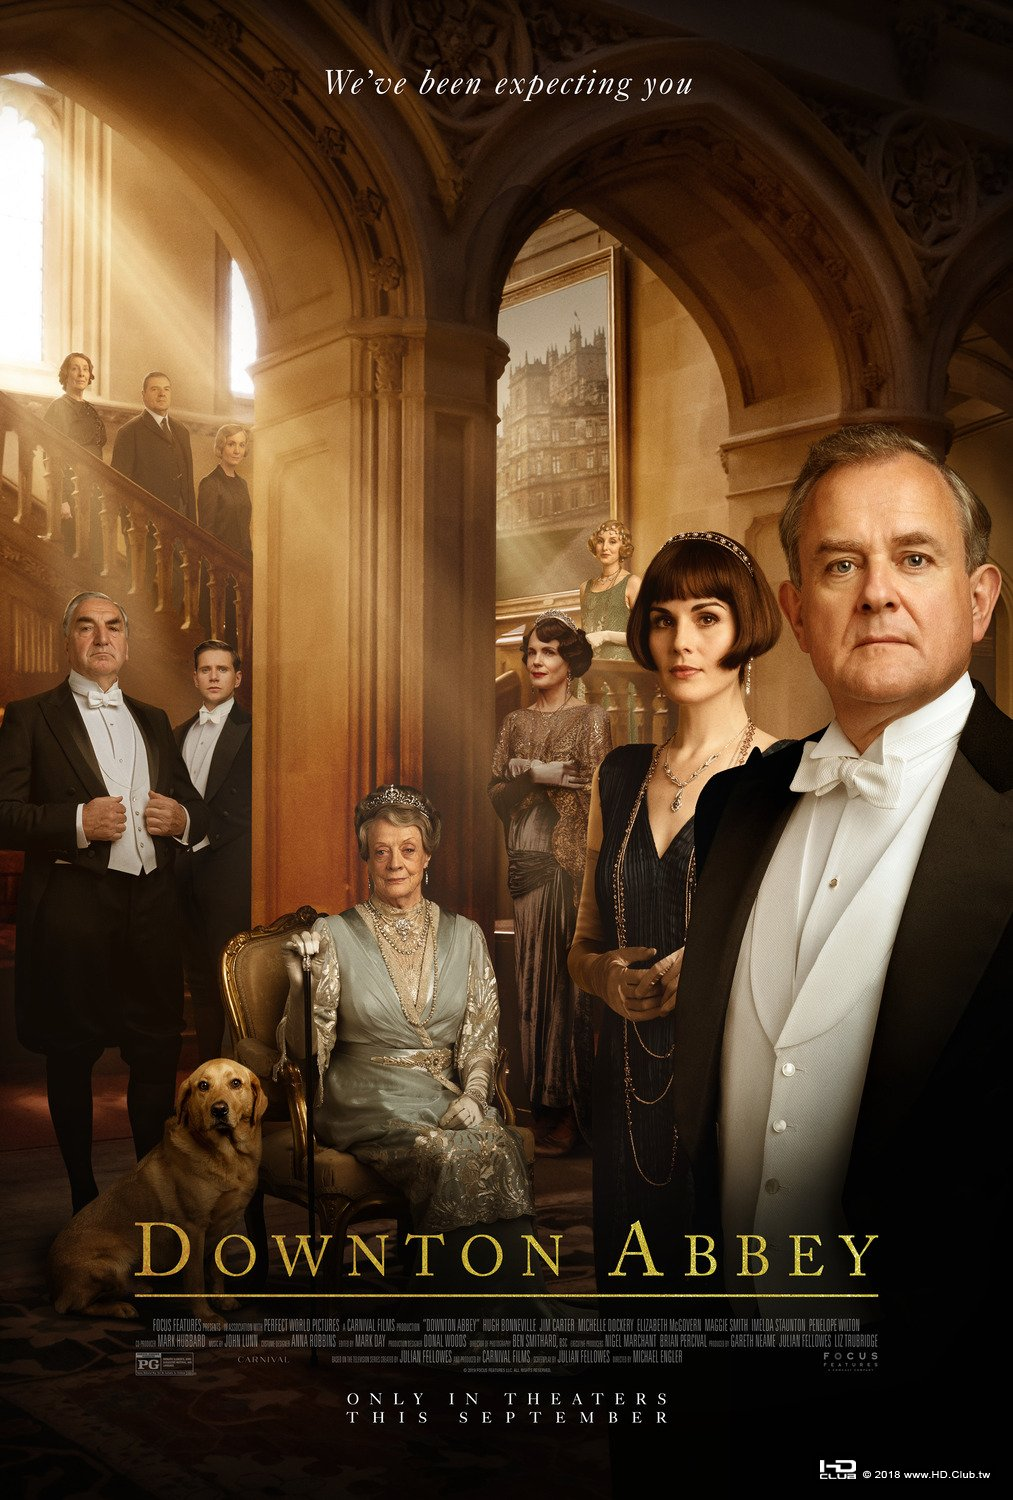 downton_abbey_ver5_xlg.jpg